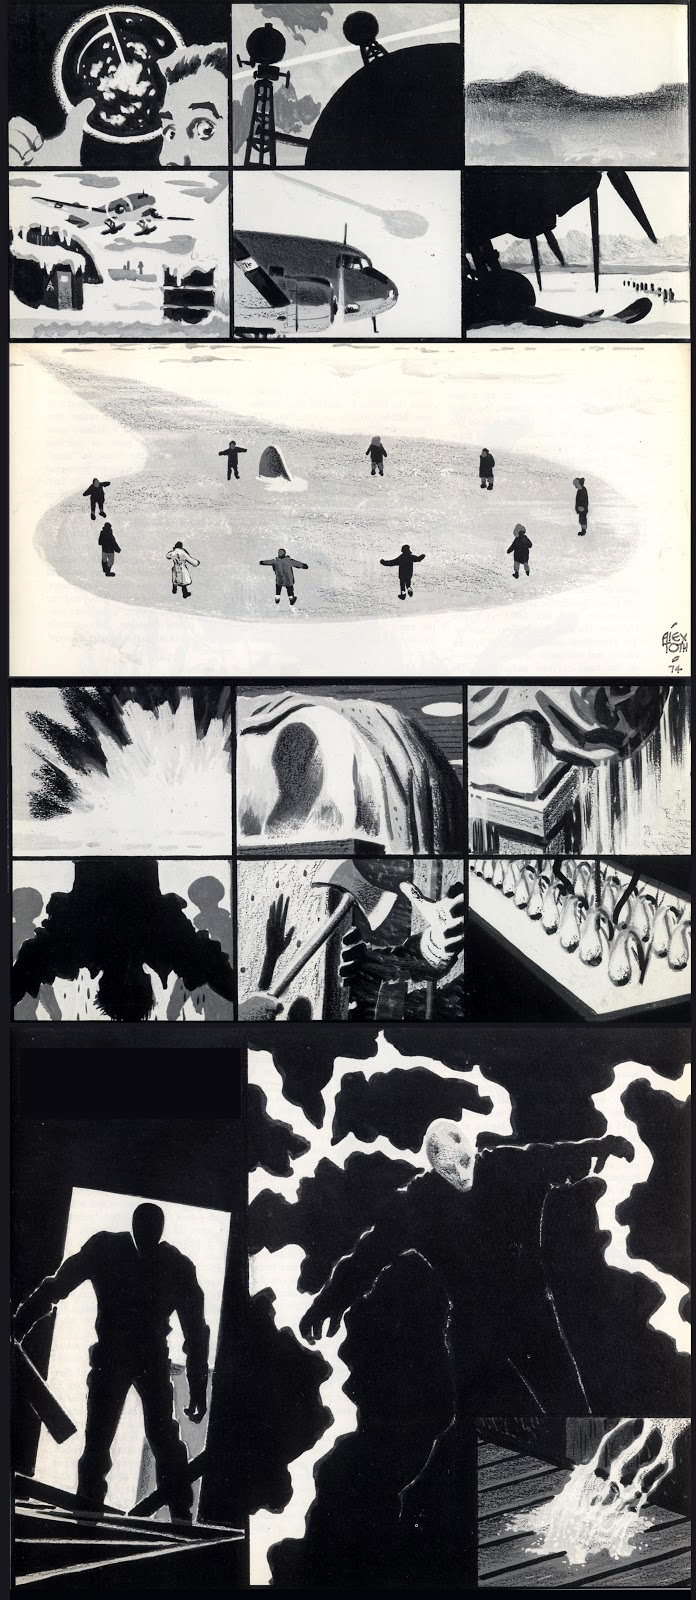 """The Thing From Another World by Alex toth      via muddycolors.blogspot.com    """"Awhile back on the Spectrum Live Facebook Page we had posted Alex Toth's comics retelling of the Howard Hawks/Christian Nyby film The Thing From Another World—which he did masterfully in only 16 panels! Drawn originally for a small press magazine in the early 1970s, it's simply too good not to see larger...so I'm sharing it again here."""""""